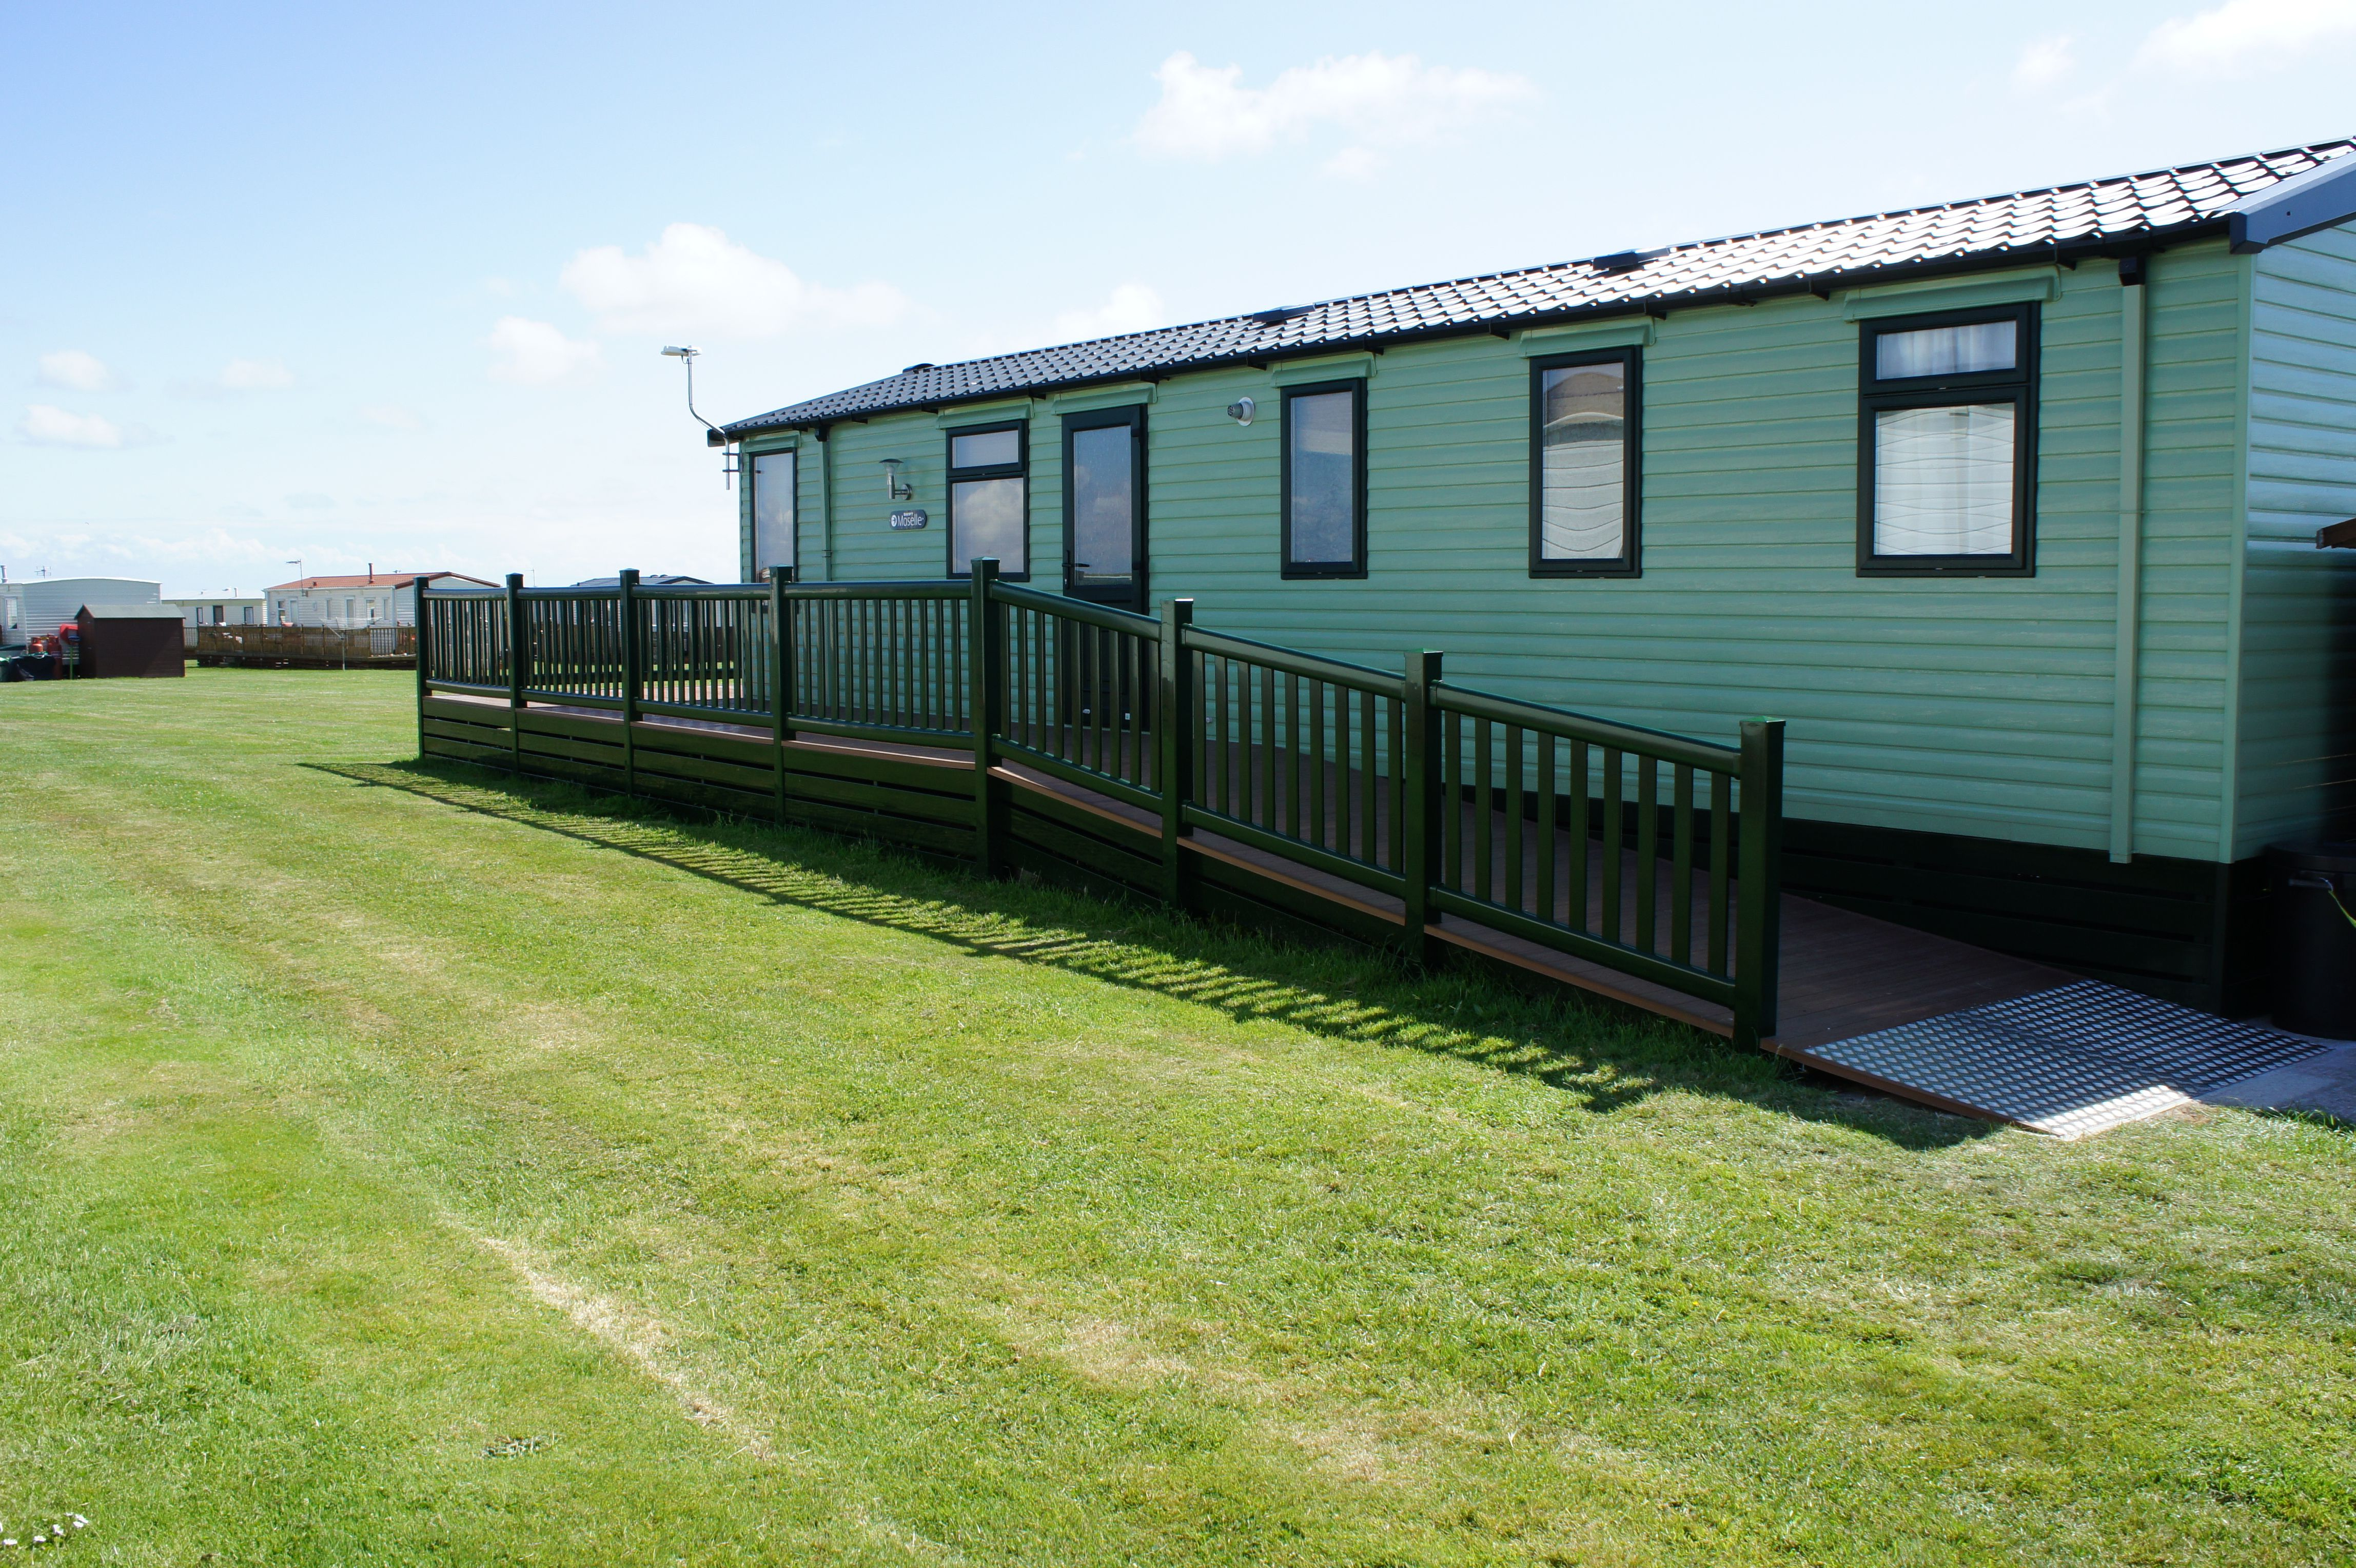 Fensys Static Caravan Upvc Decking With Ramp Access Holiday Home Deck Park Homes